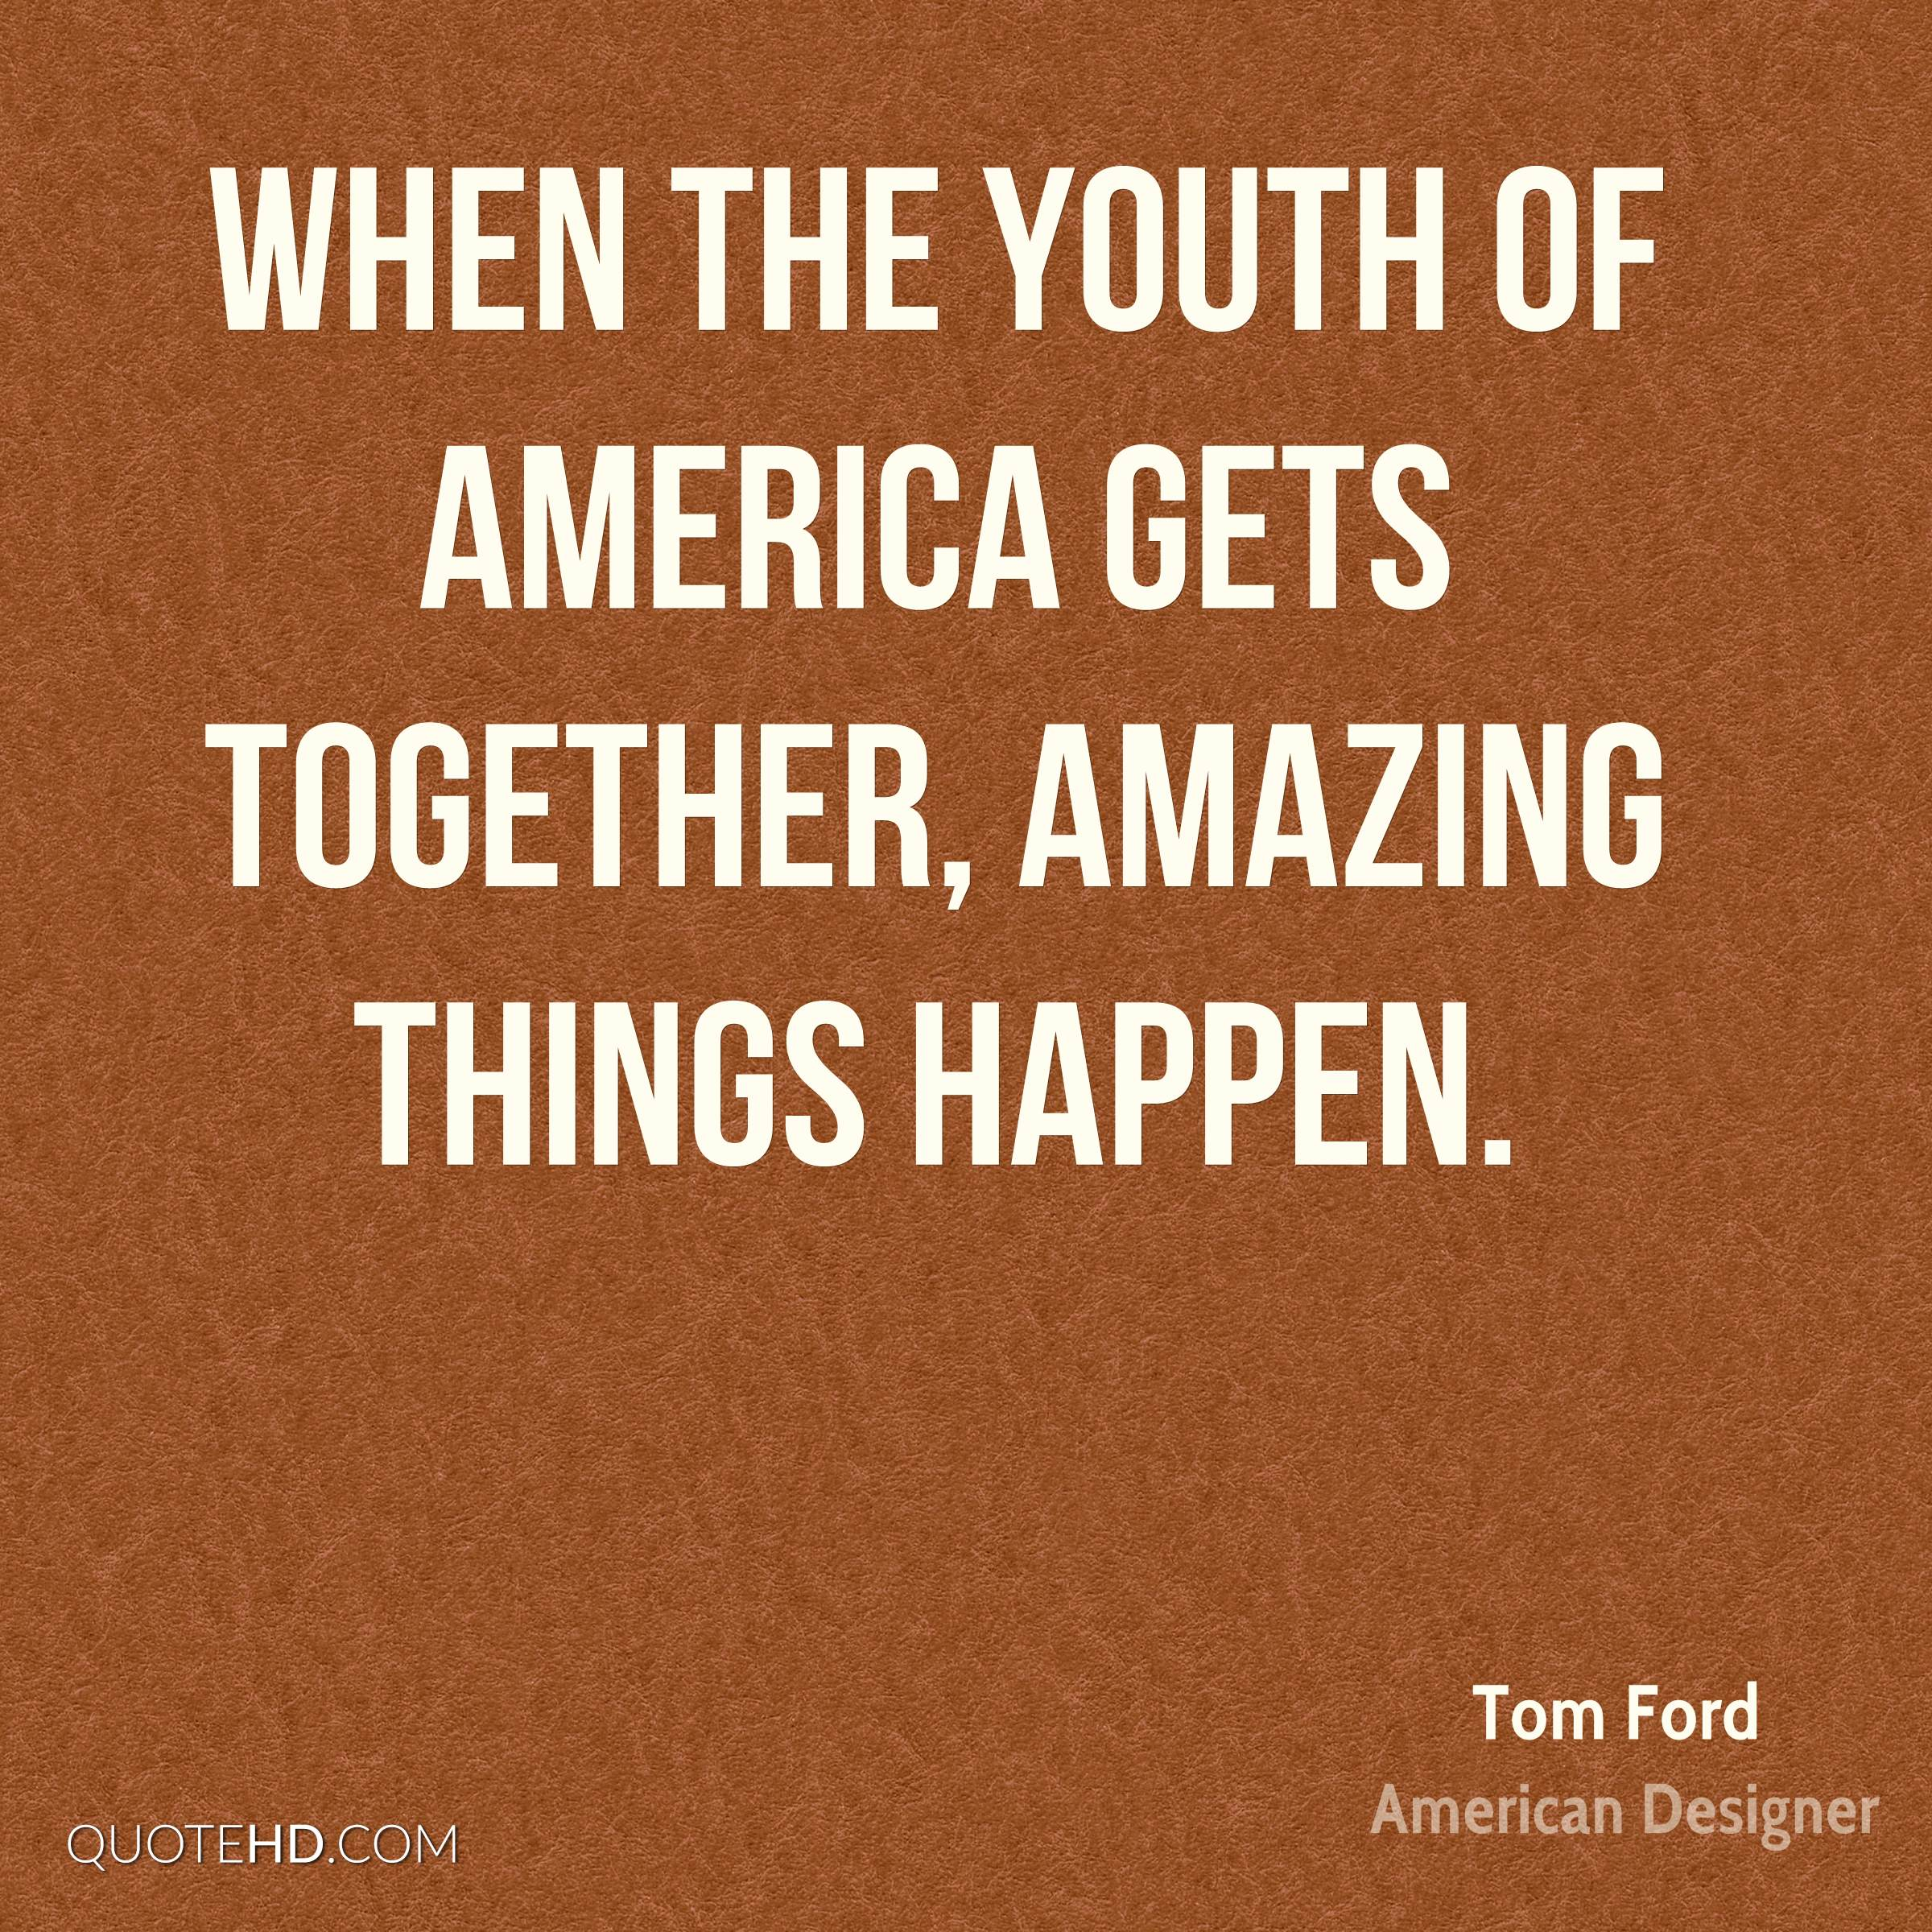 When the youth of America gets together, amazing things happen.